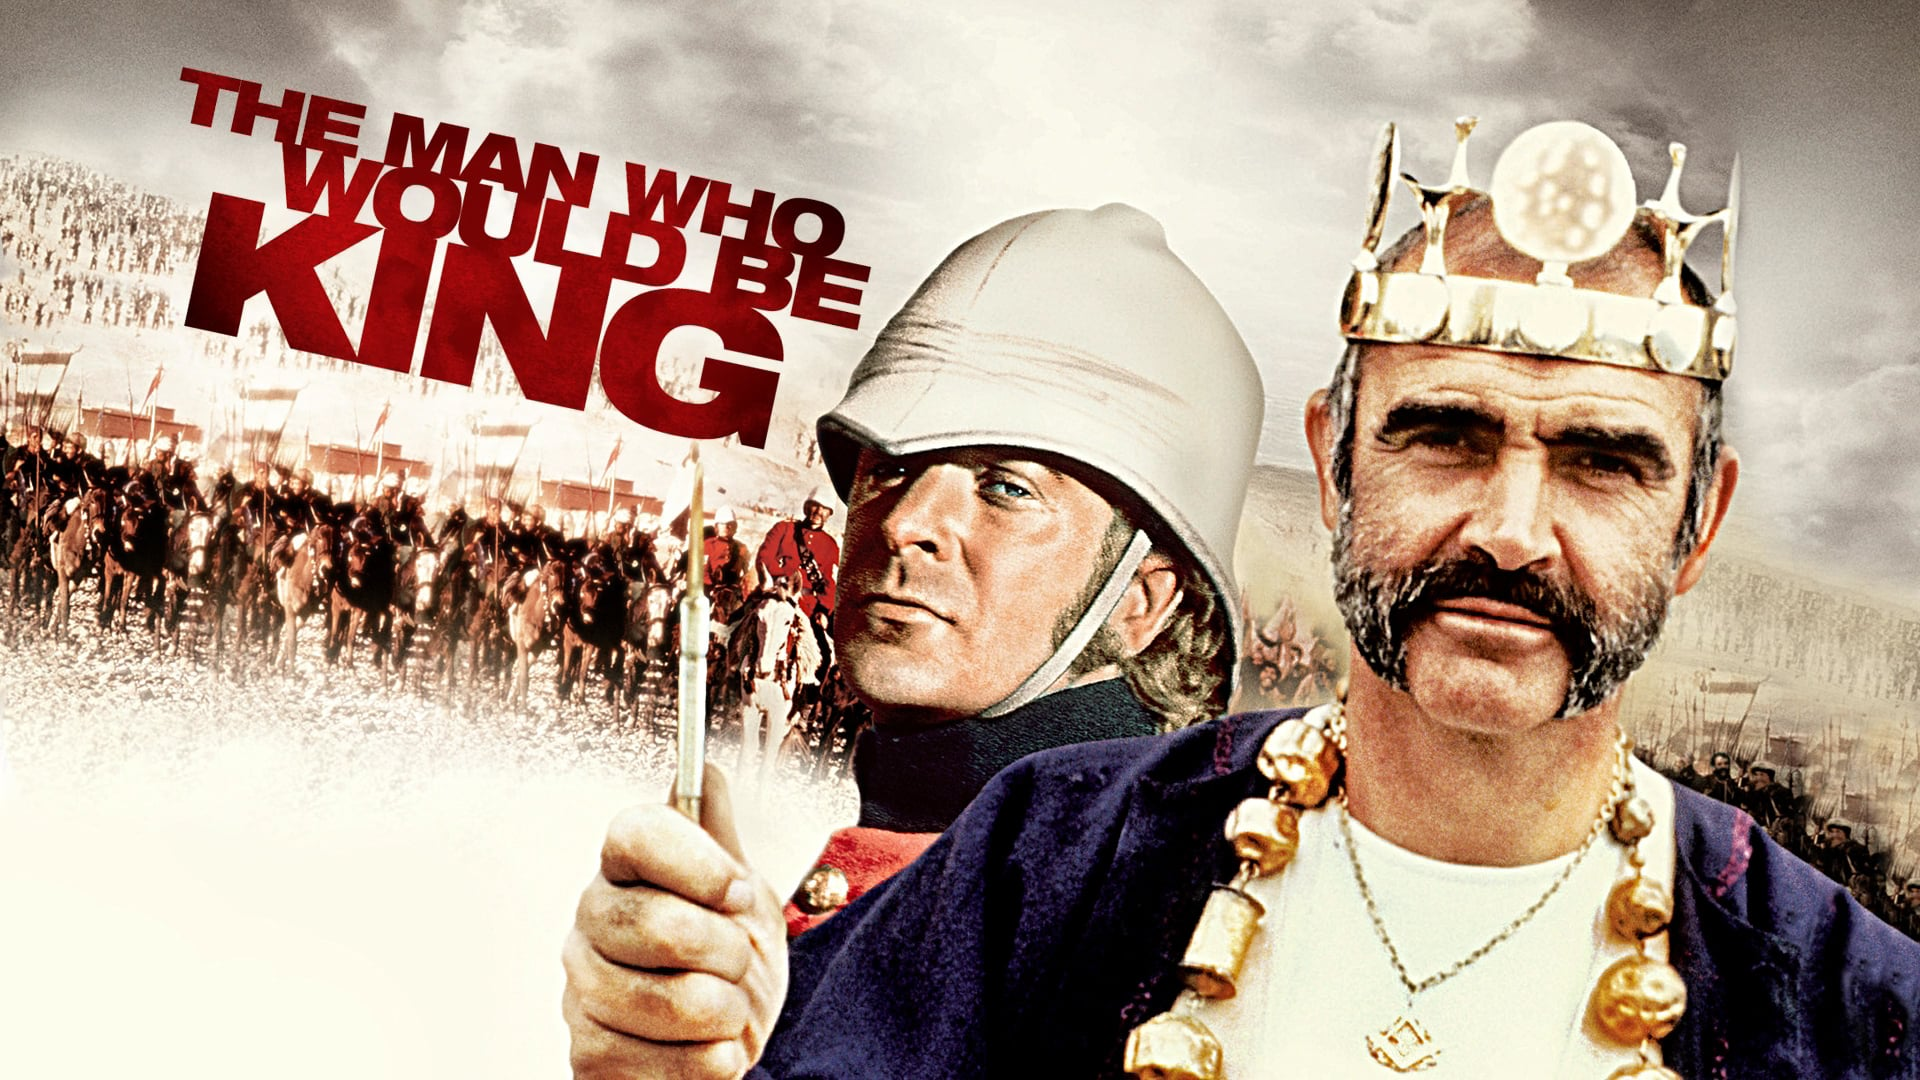 THe MAN whO wOULD Be KING.jpg